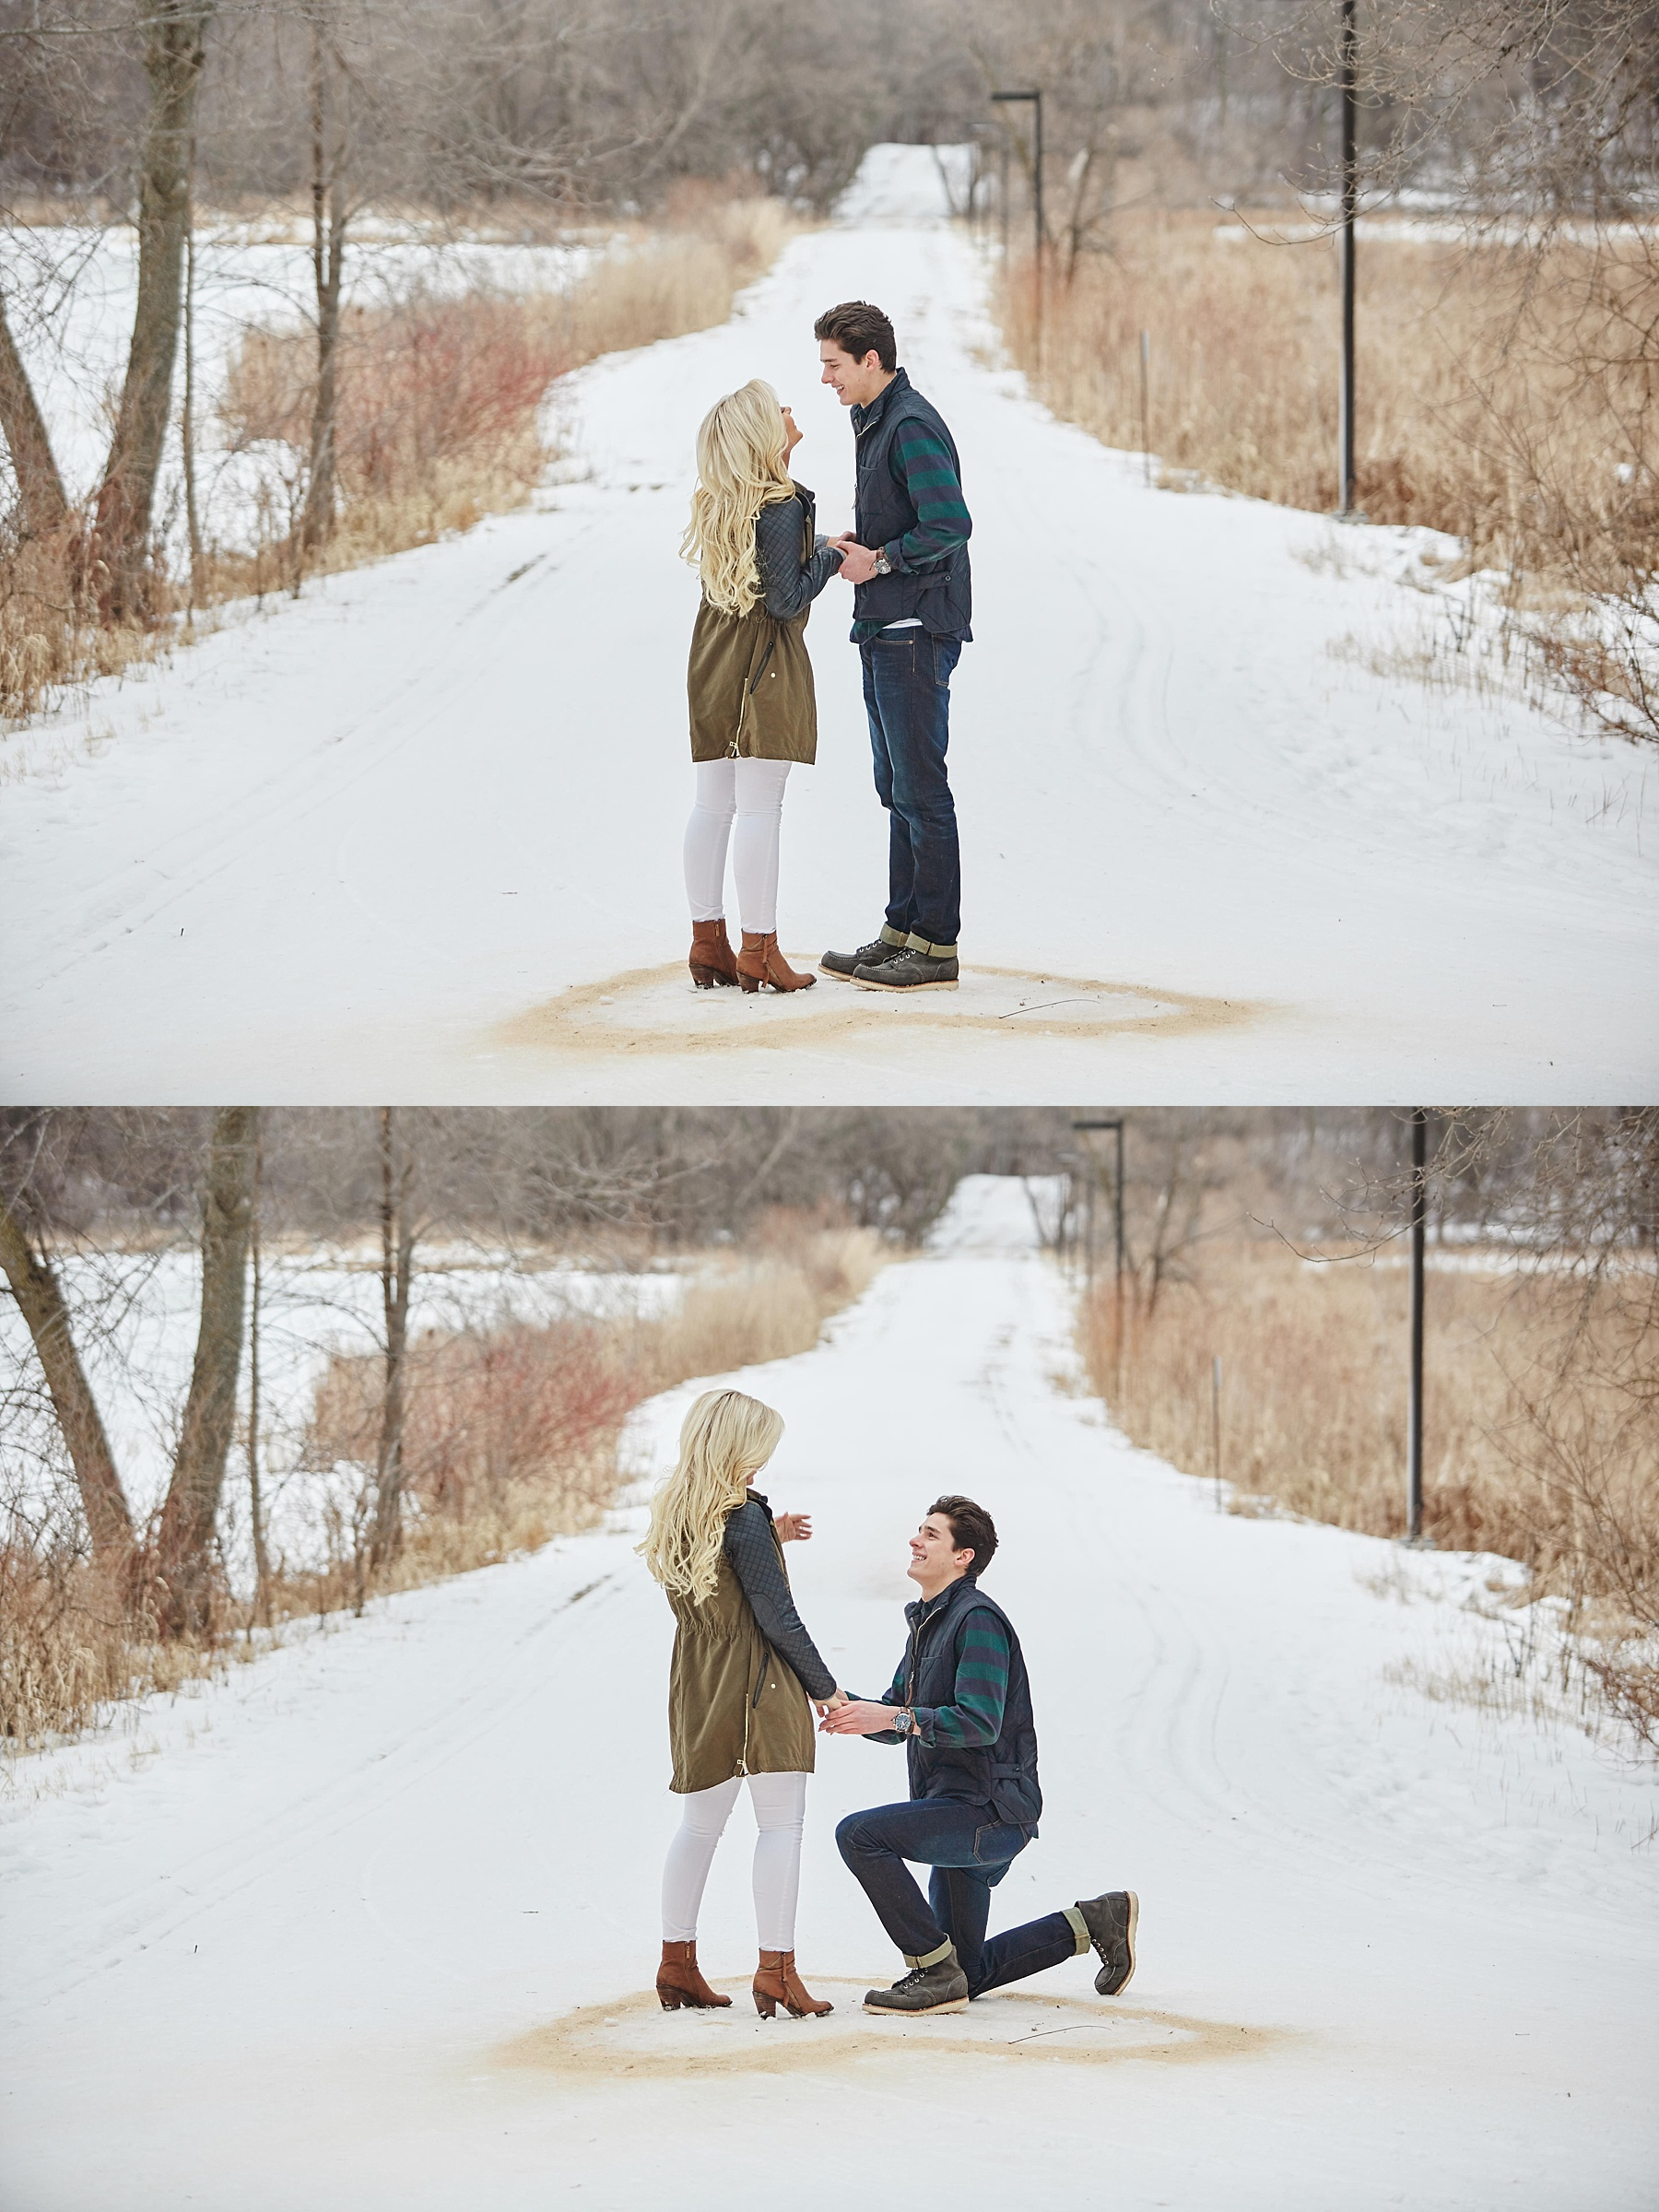 Elm-Creek-Park-Reserve-Engagement-Session-Perry-James-Photo_0166.jpg